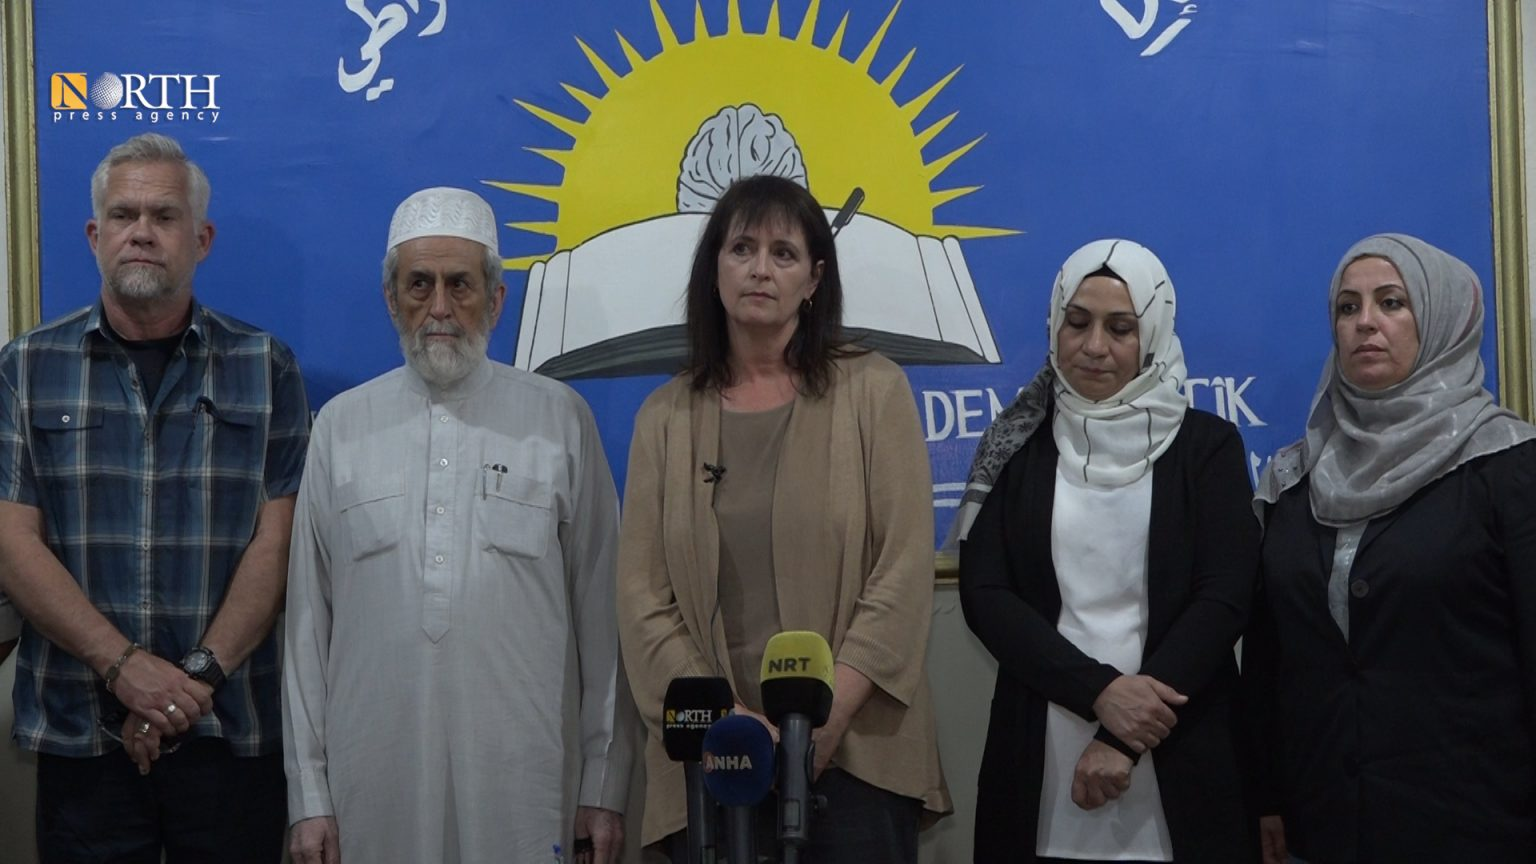 USCIRF Vice Chair Nadine Maenza at a conference in Qamishli – North Press